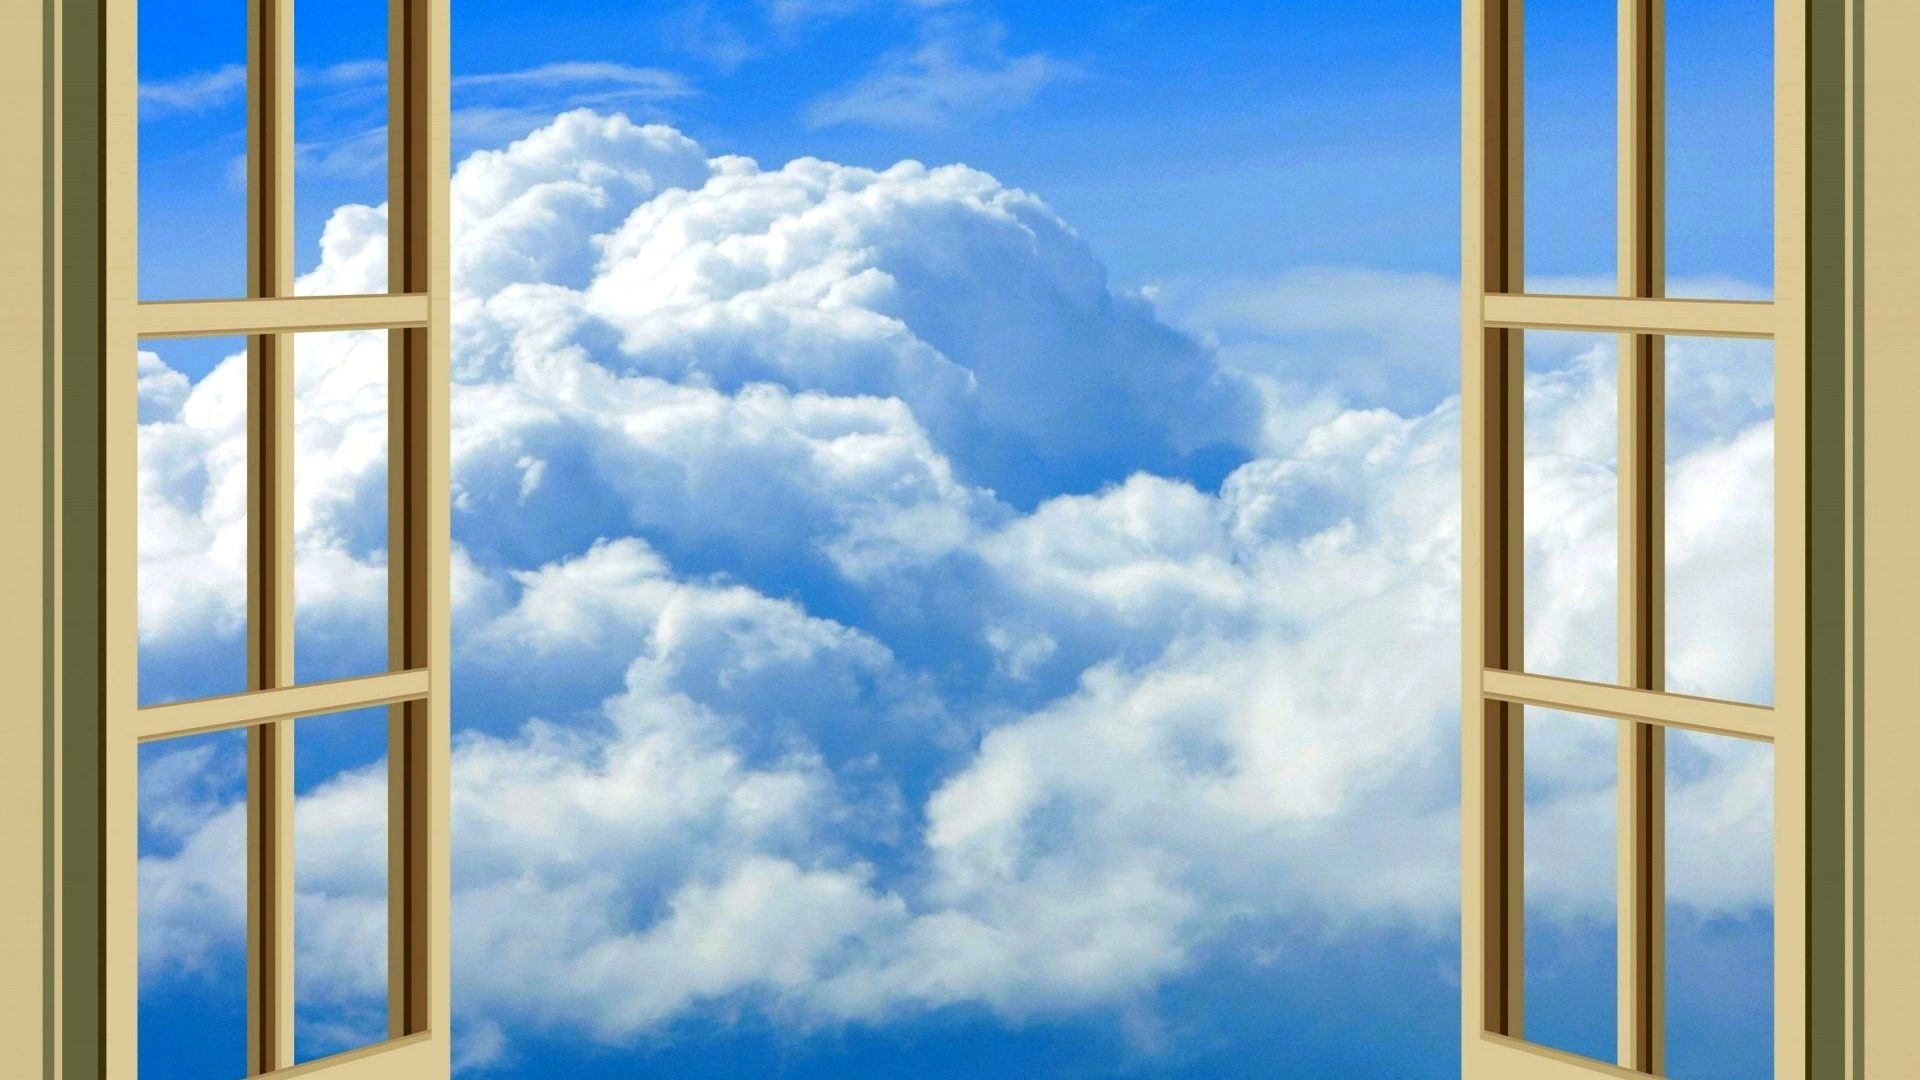 Res: 1920x1080, Sky Opened Window Nature Clouds Open Wallpaper Free : Sky for HD 16:9 High